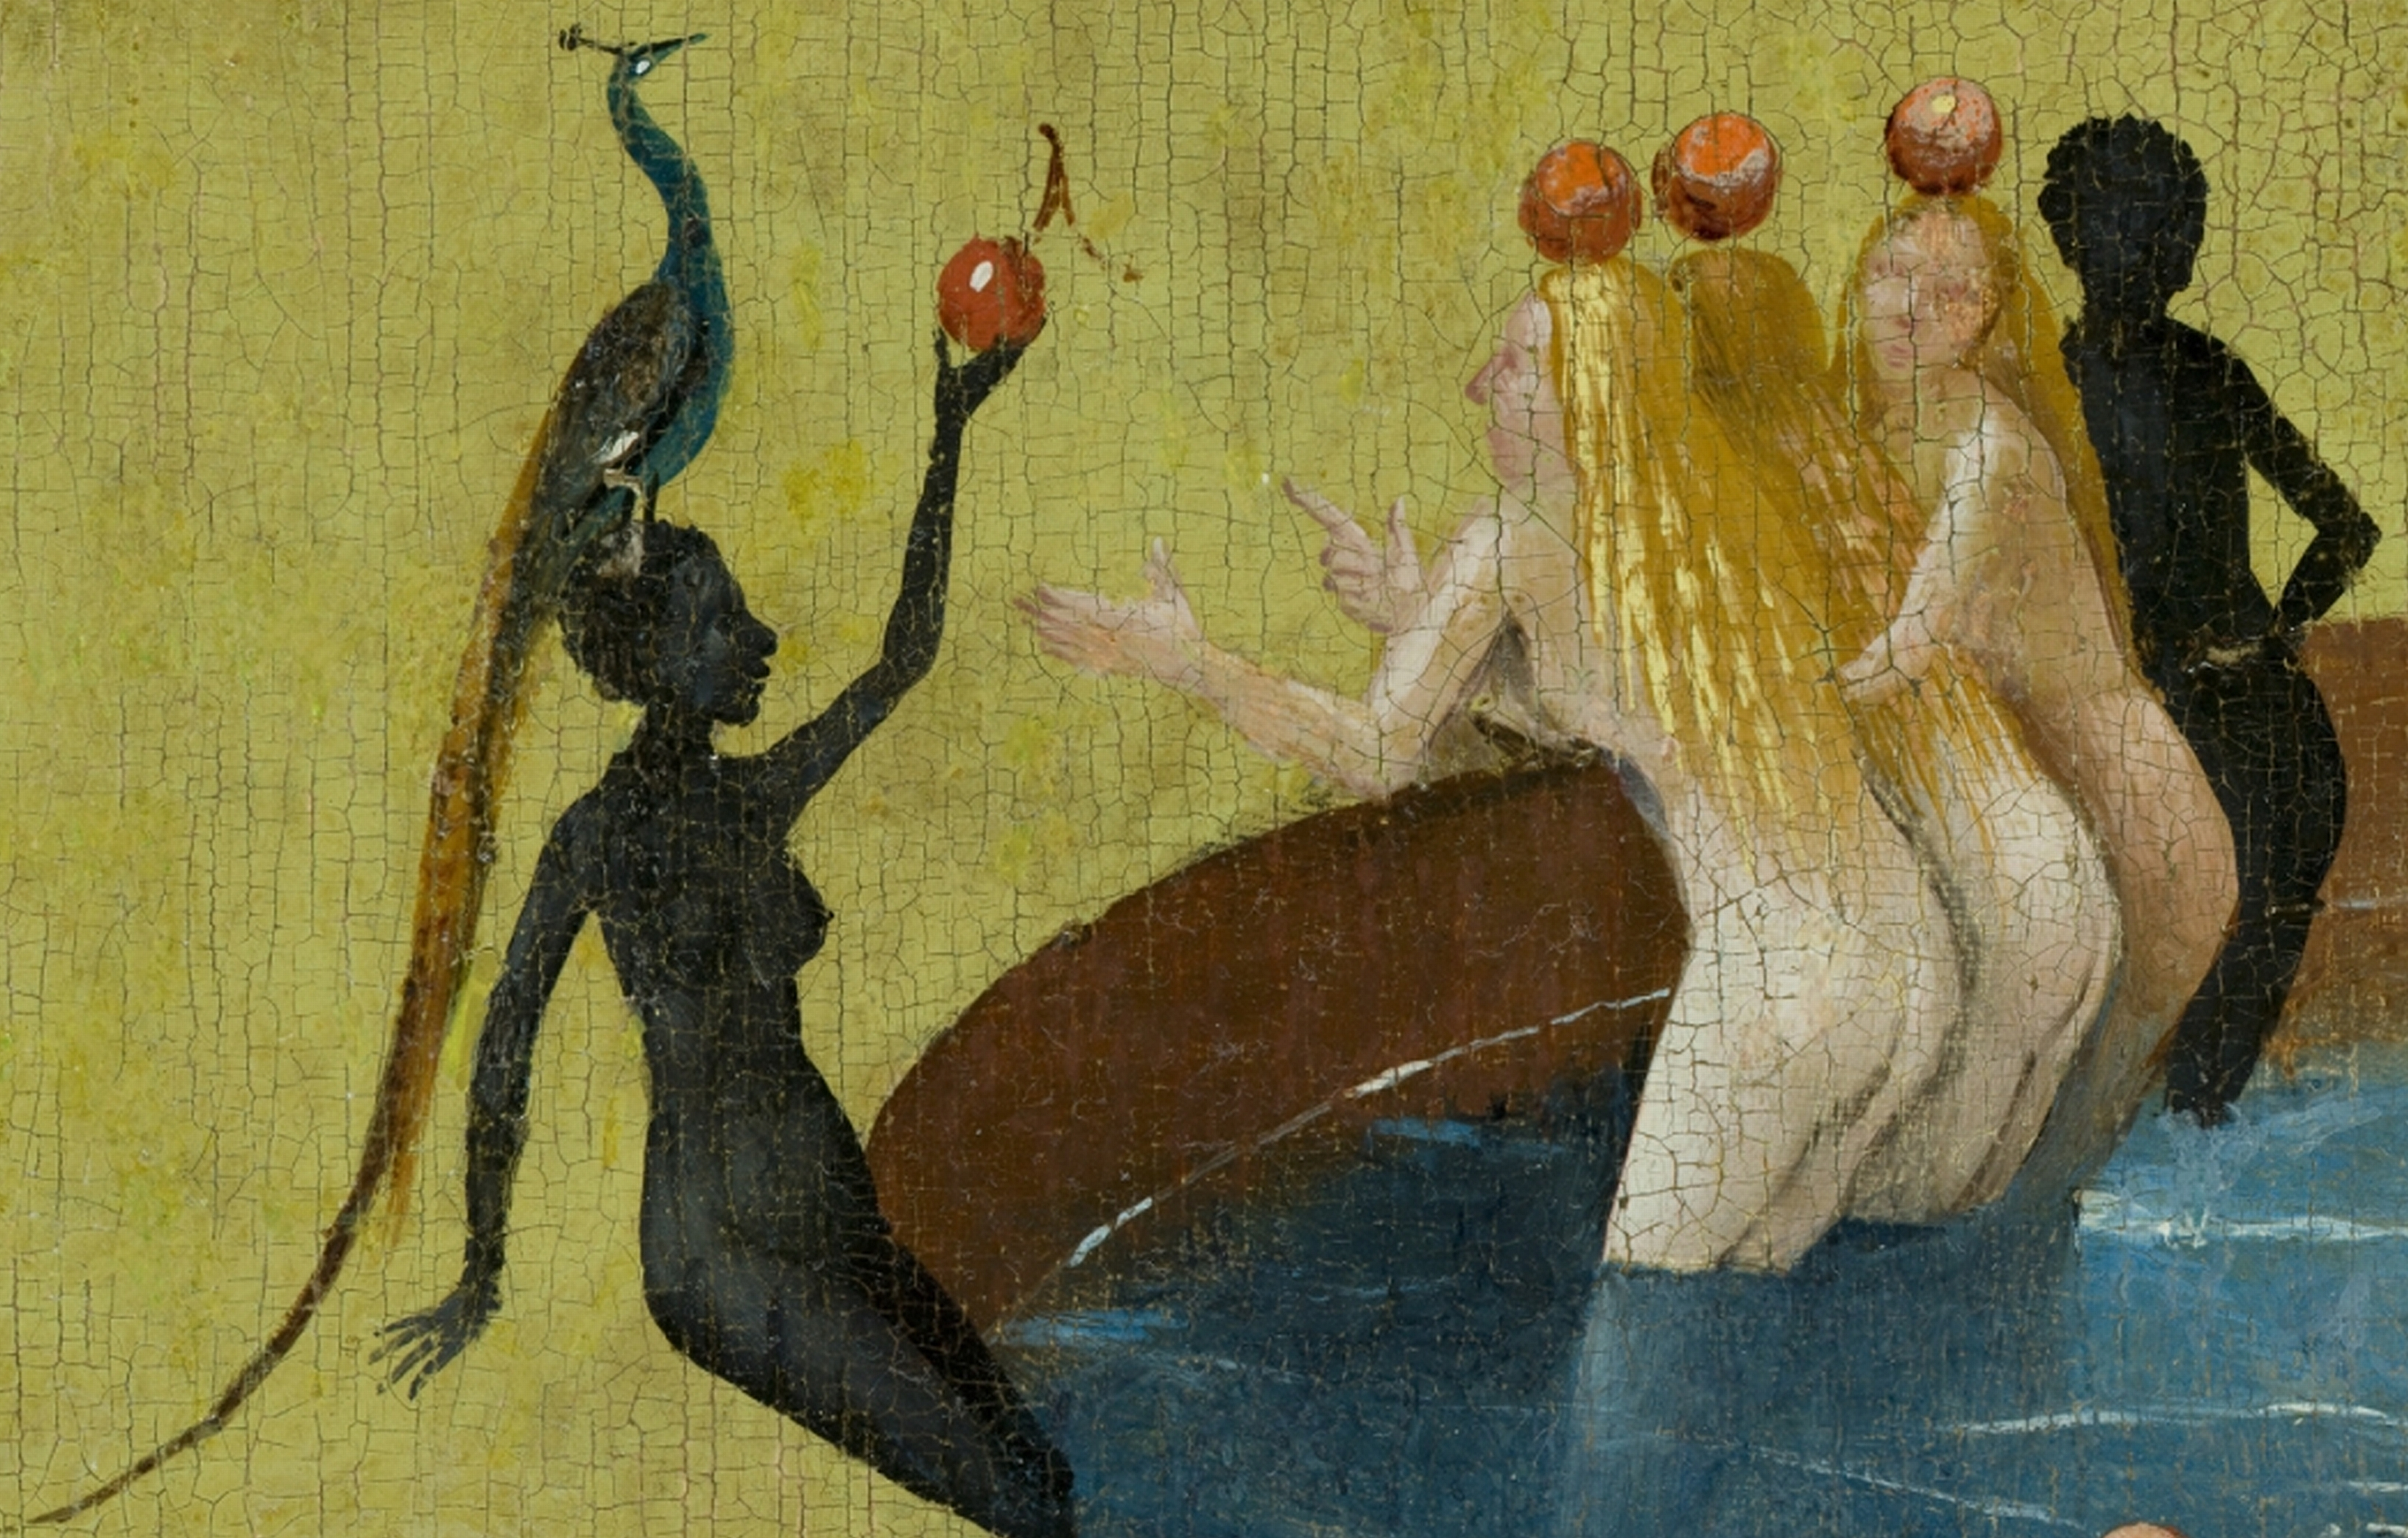 Bosch, Hieronymus   The Garden Of Earthly Delights, Center Panel   Detail  Women With